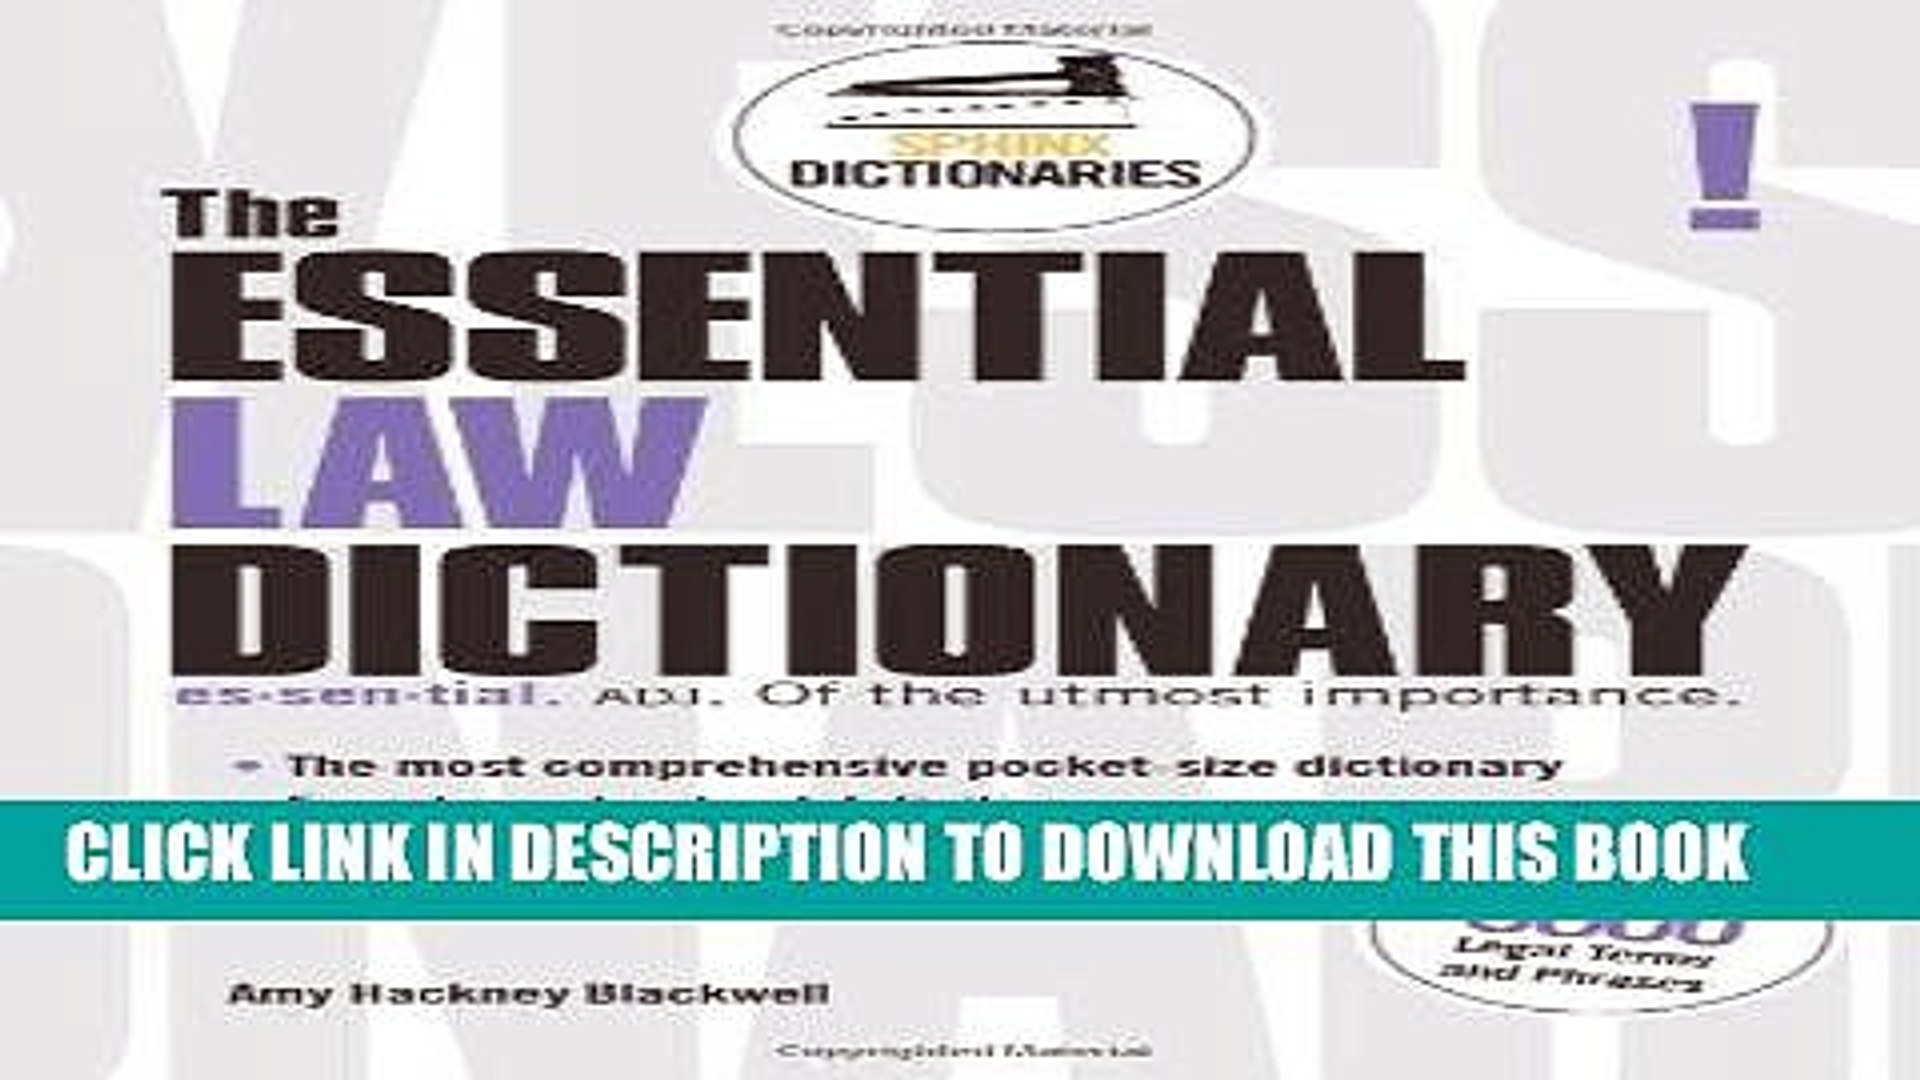 The Essential Accounting Dictionary (Sphinx Dictionaries)